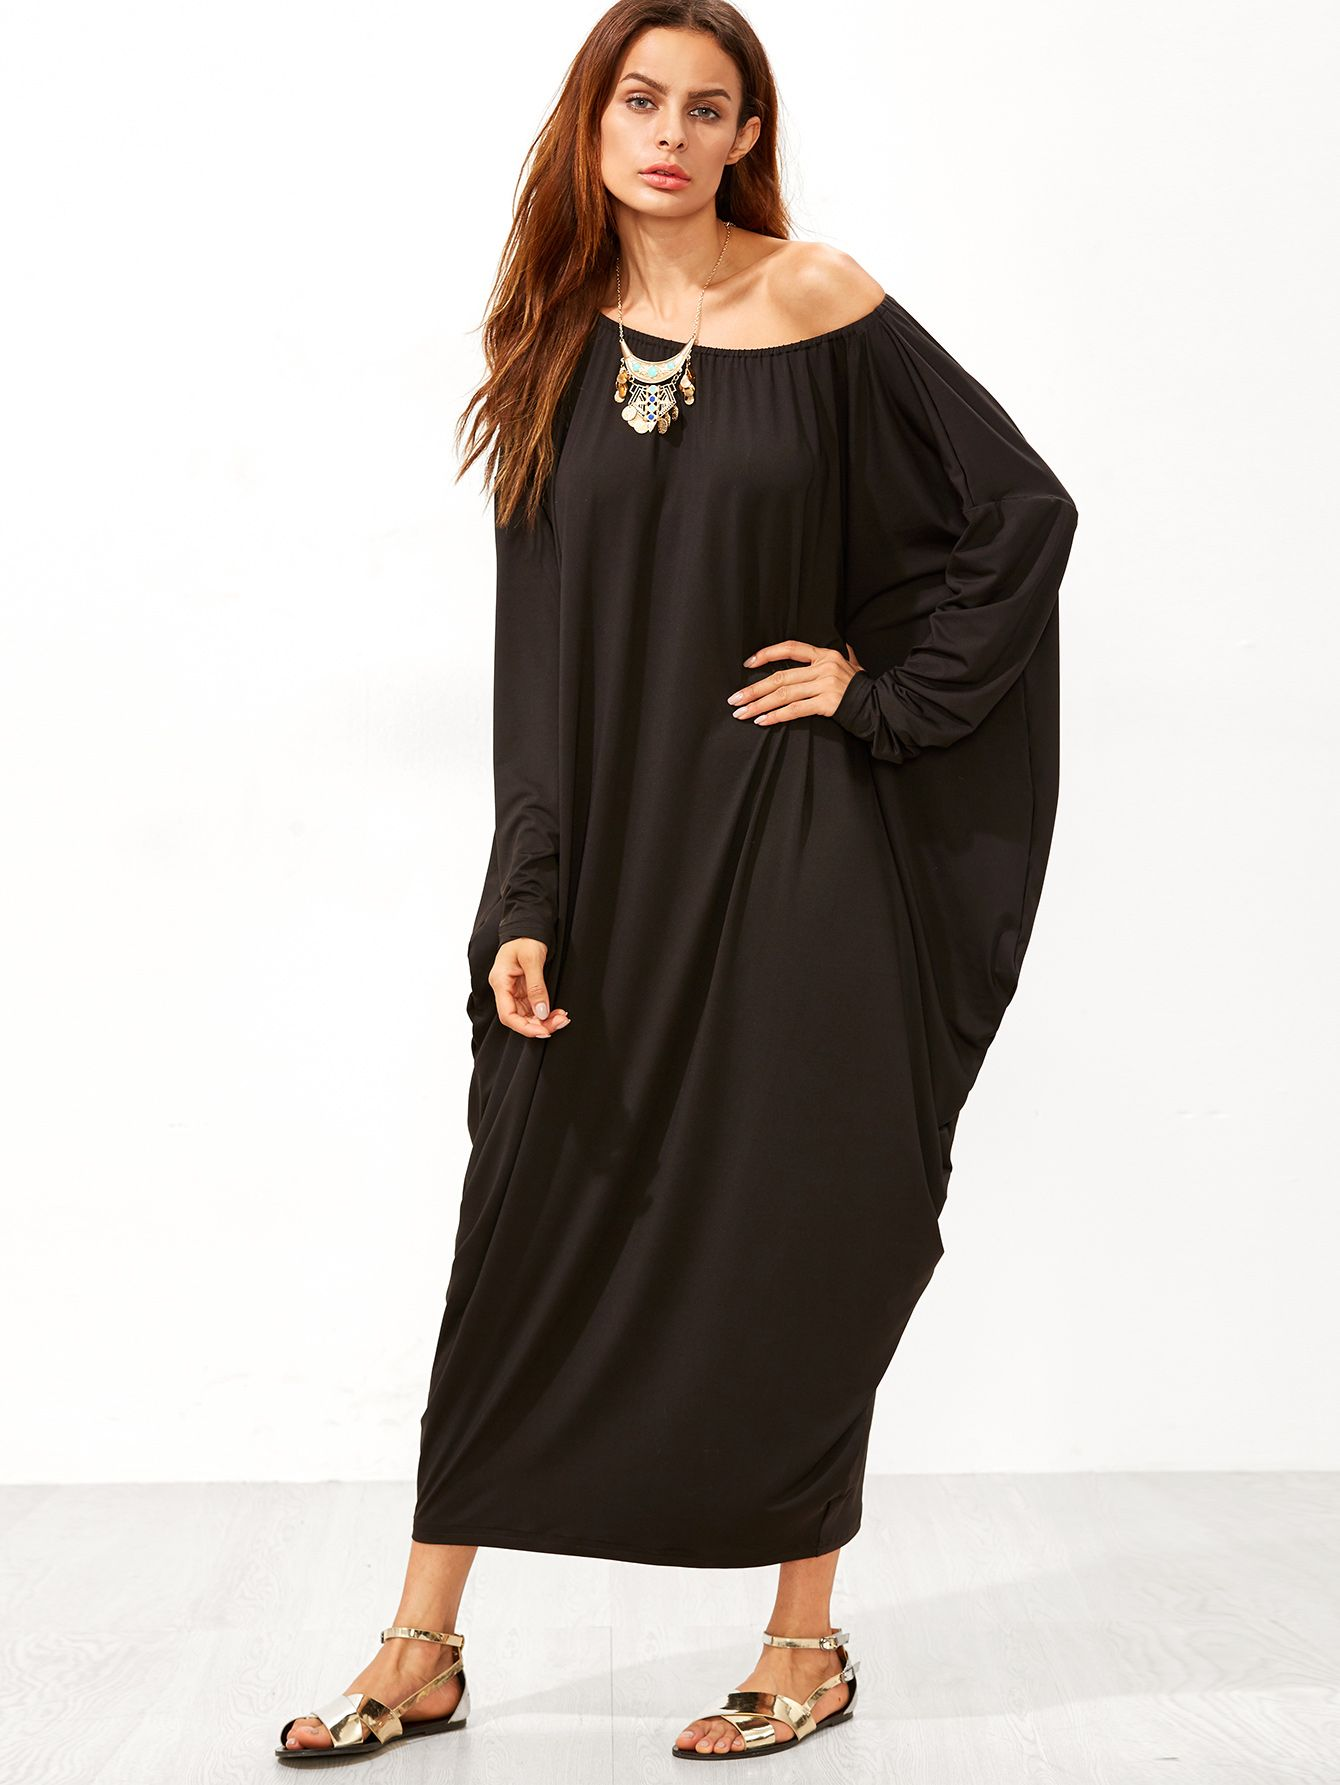 Pin by abella b on in style pinterest boat neck maxi dresses